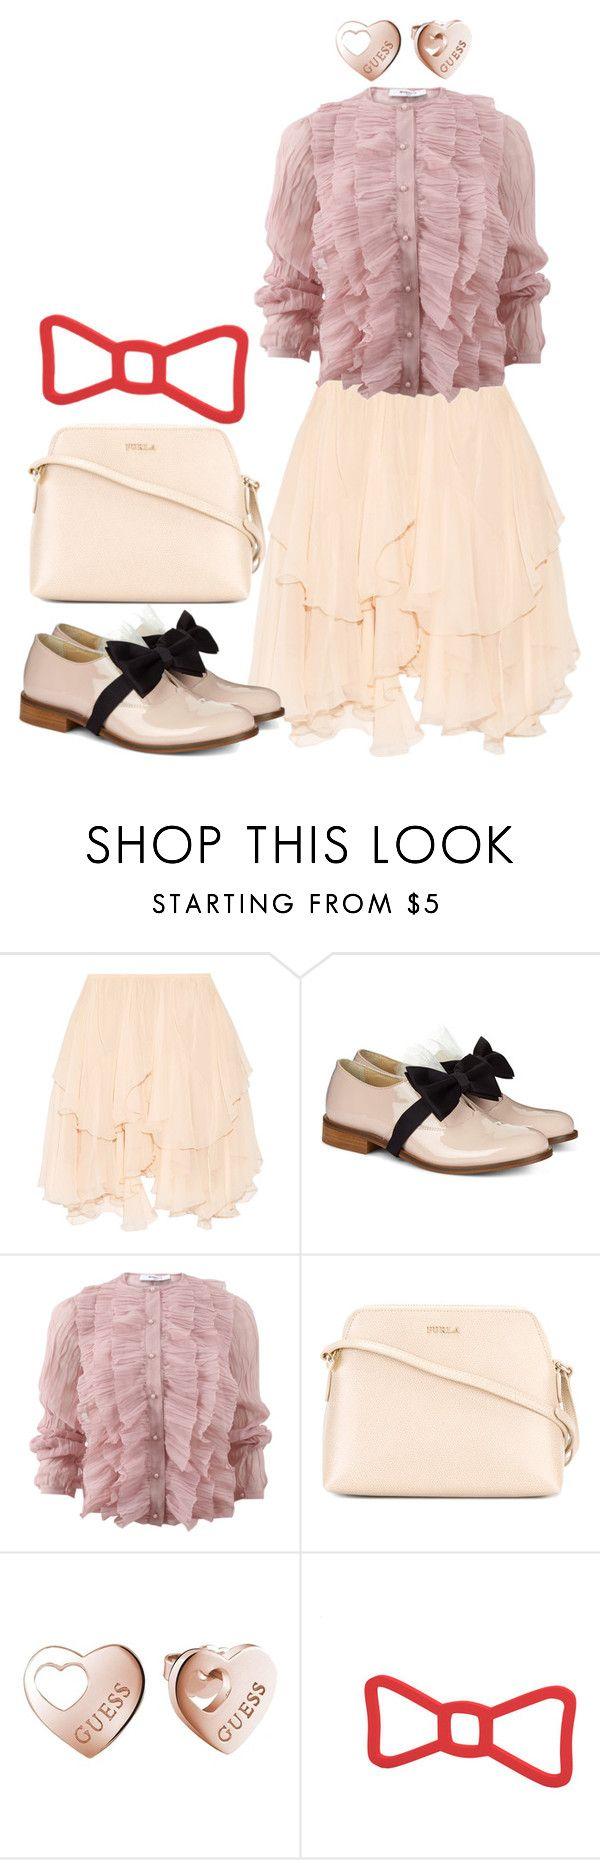 """Bows Shoes"" by anifitria-af ❤ liked on Polyvore featuring Chloé, Pokemaoke, Givenchy, Furla, GUESS and bows"